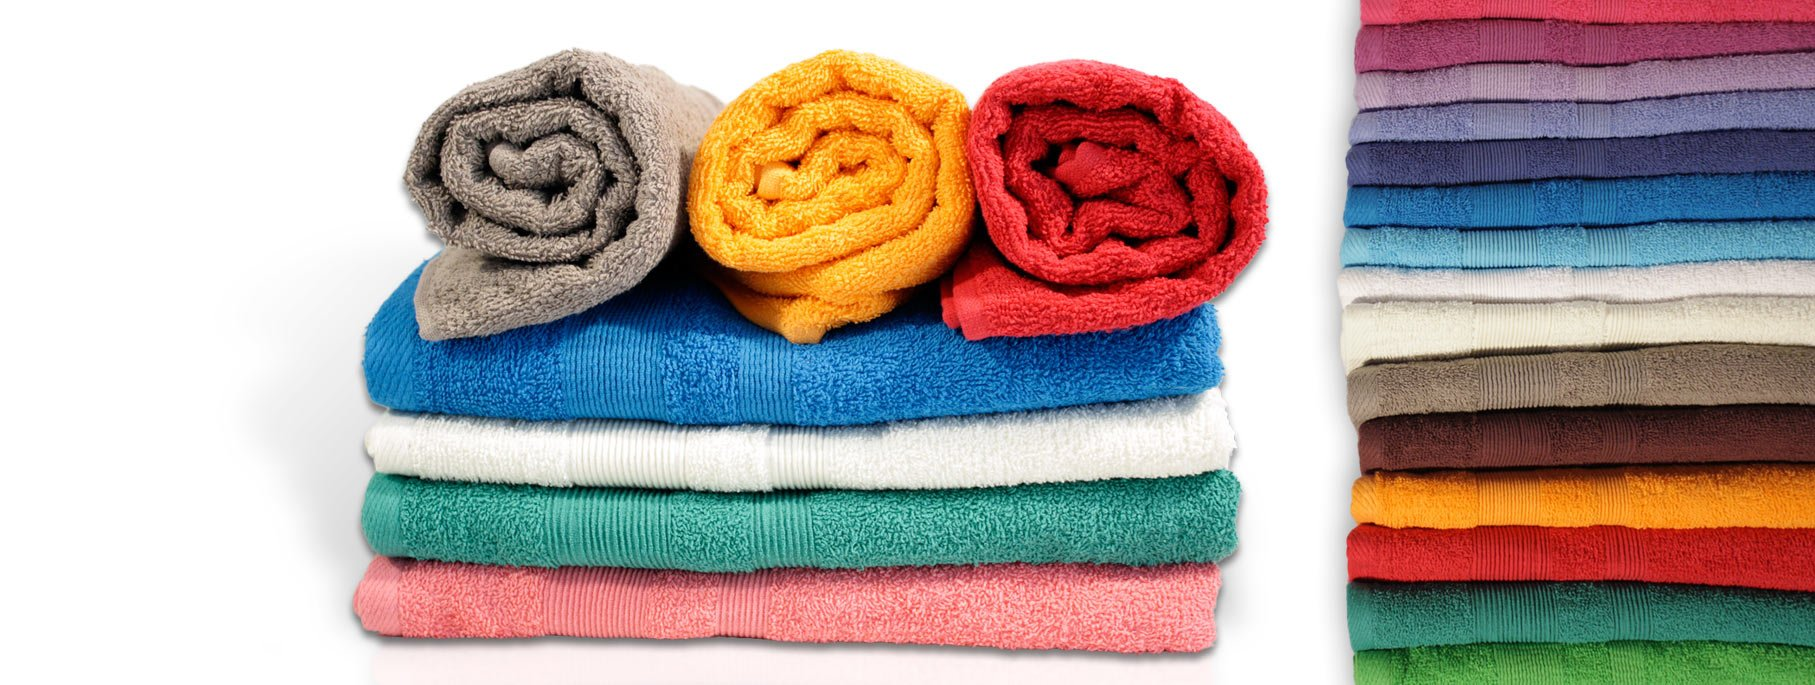 Towels NATURA CURL 100% Cotton